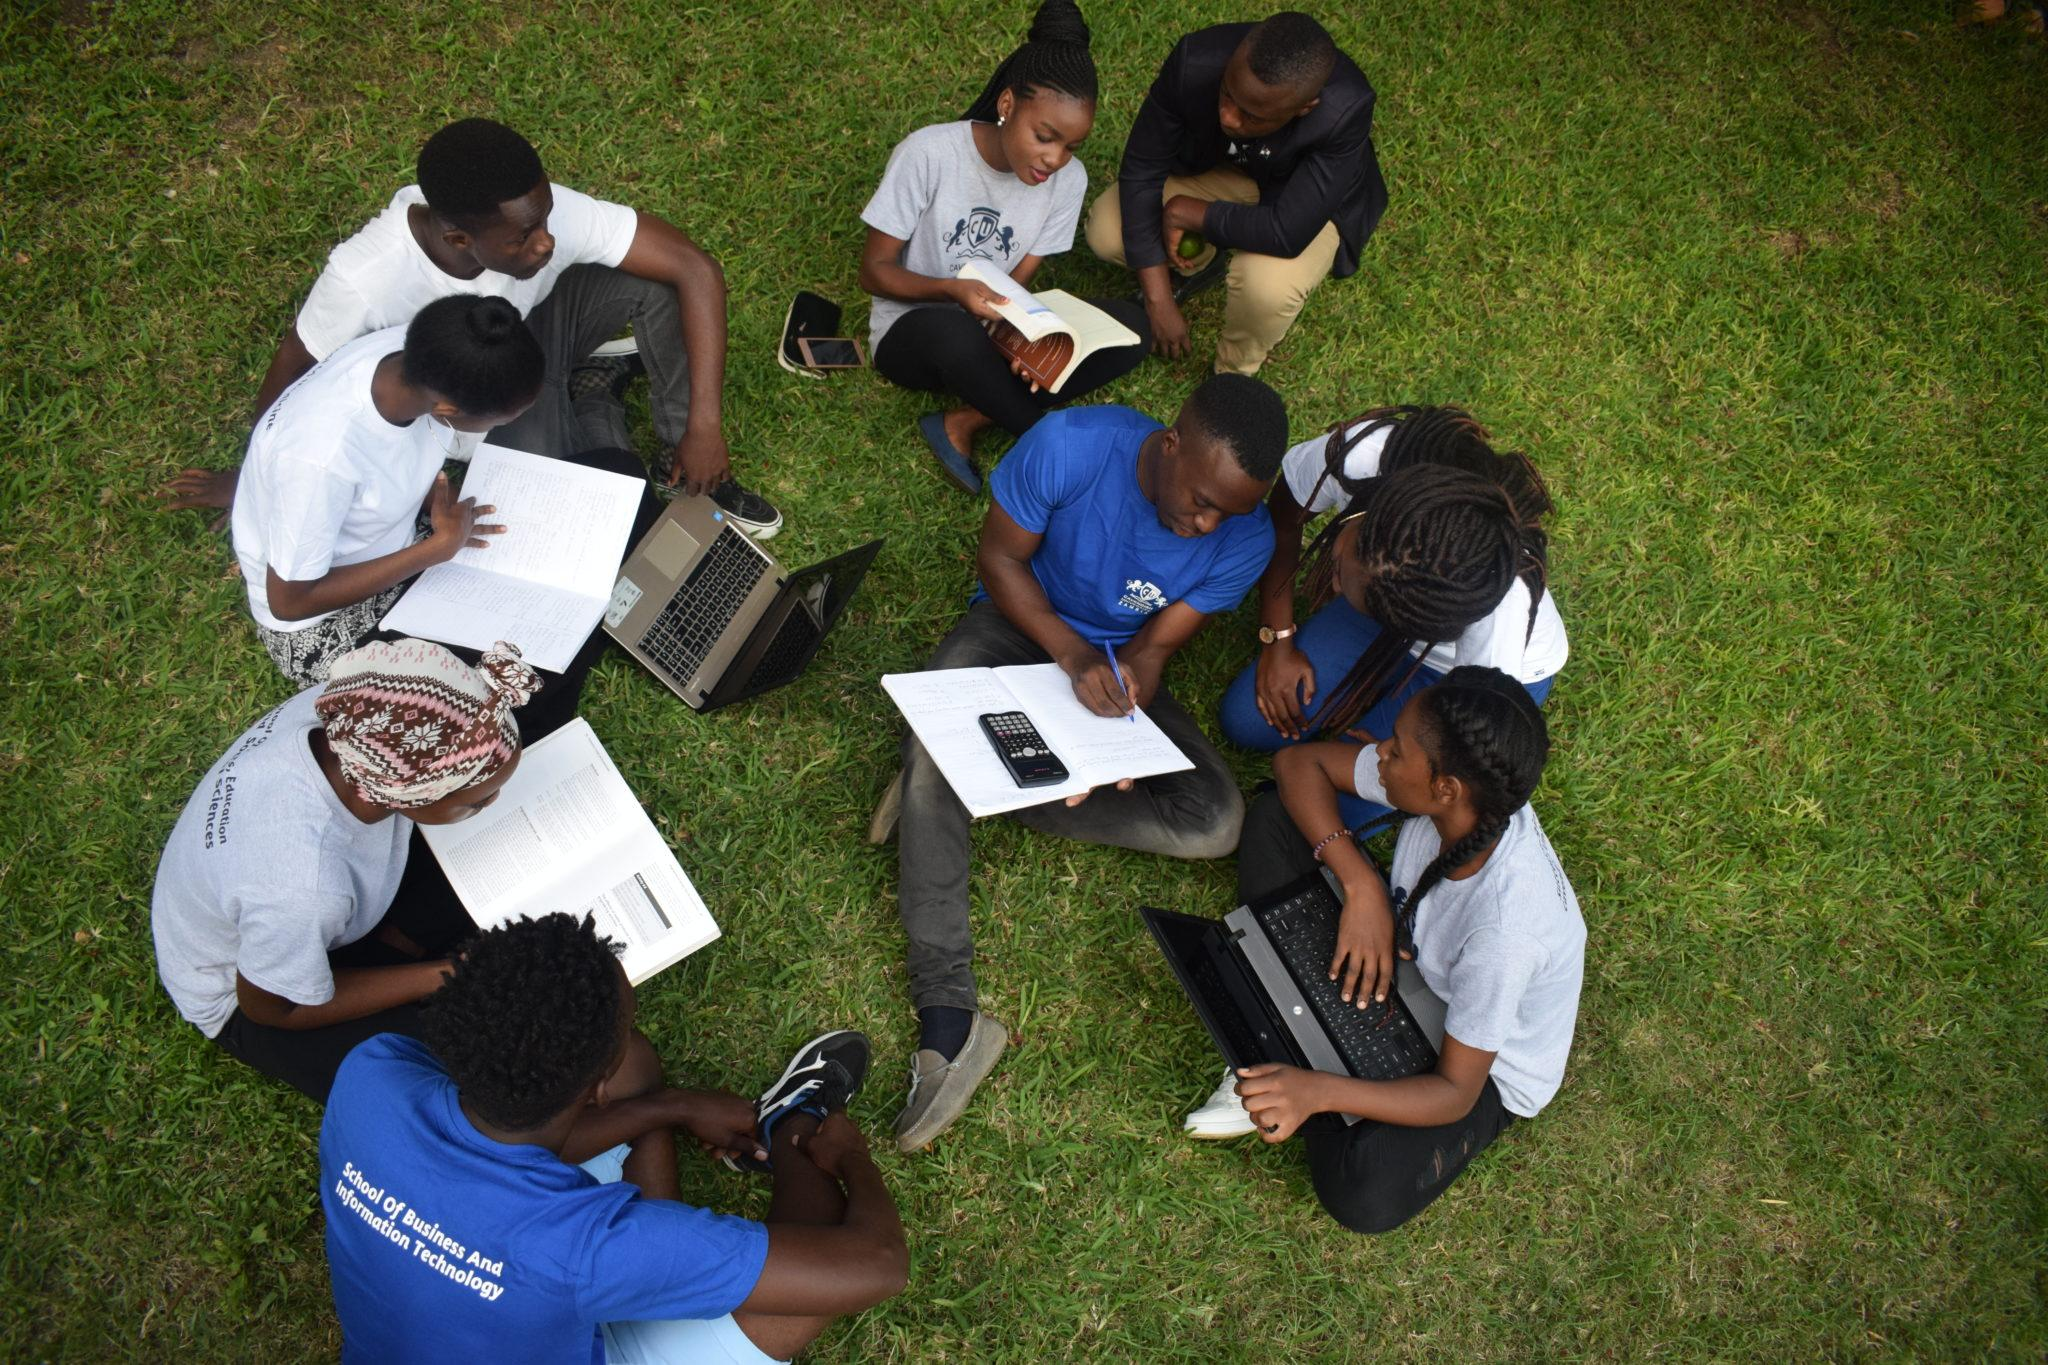 Students sitting outside on the ground and studying.